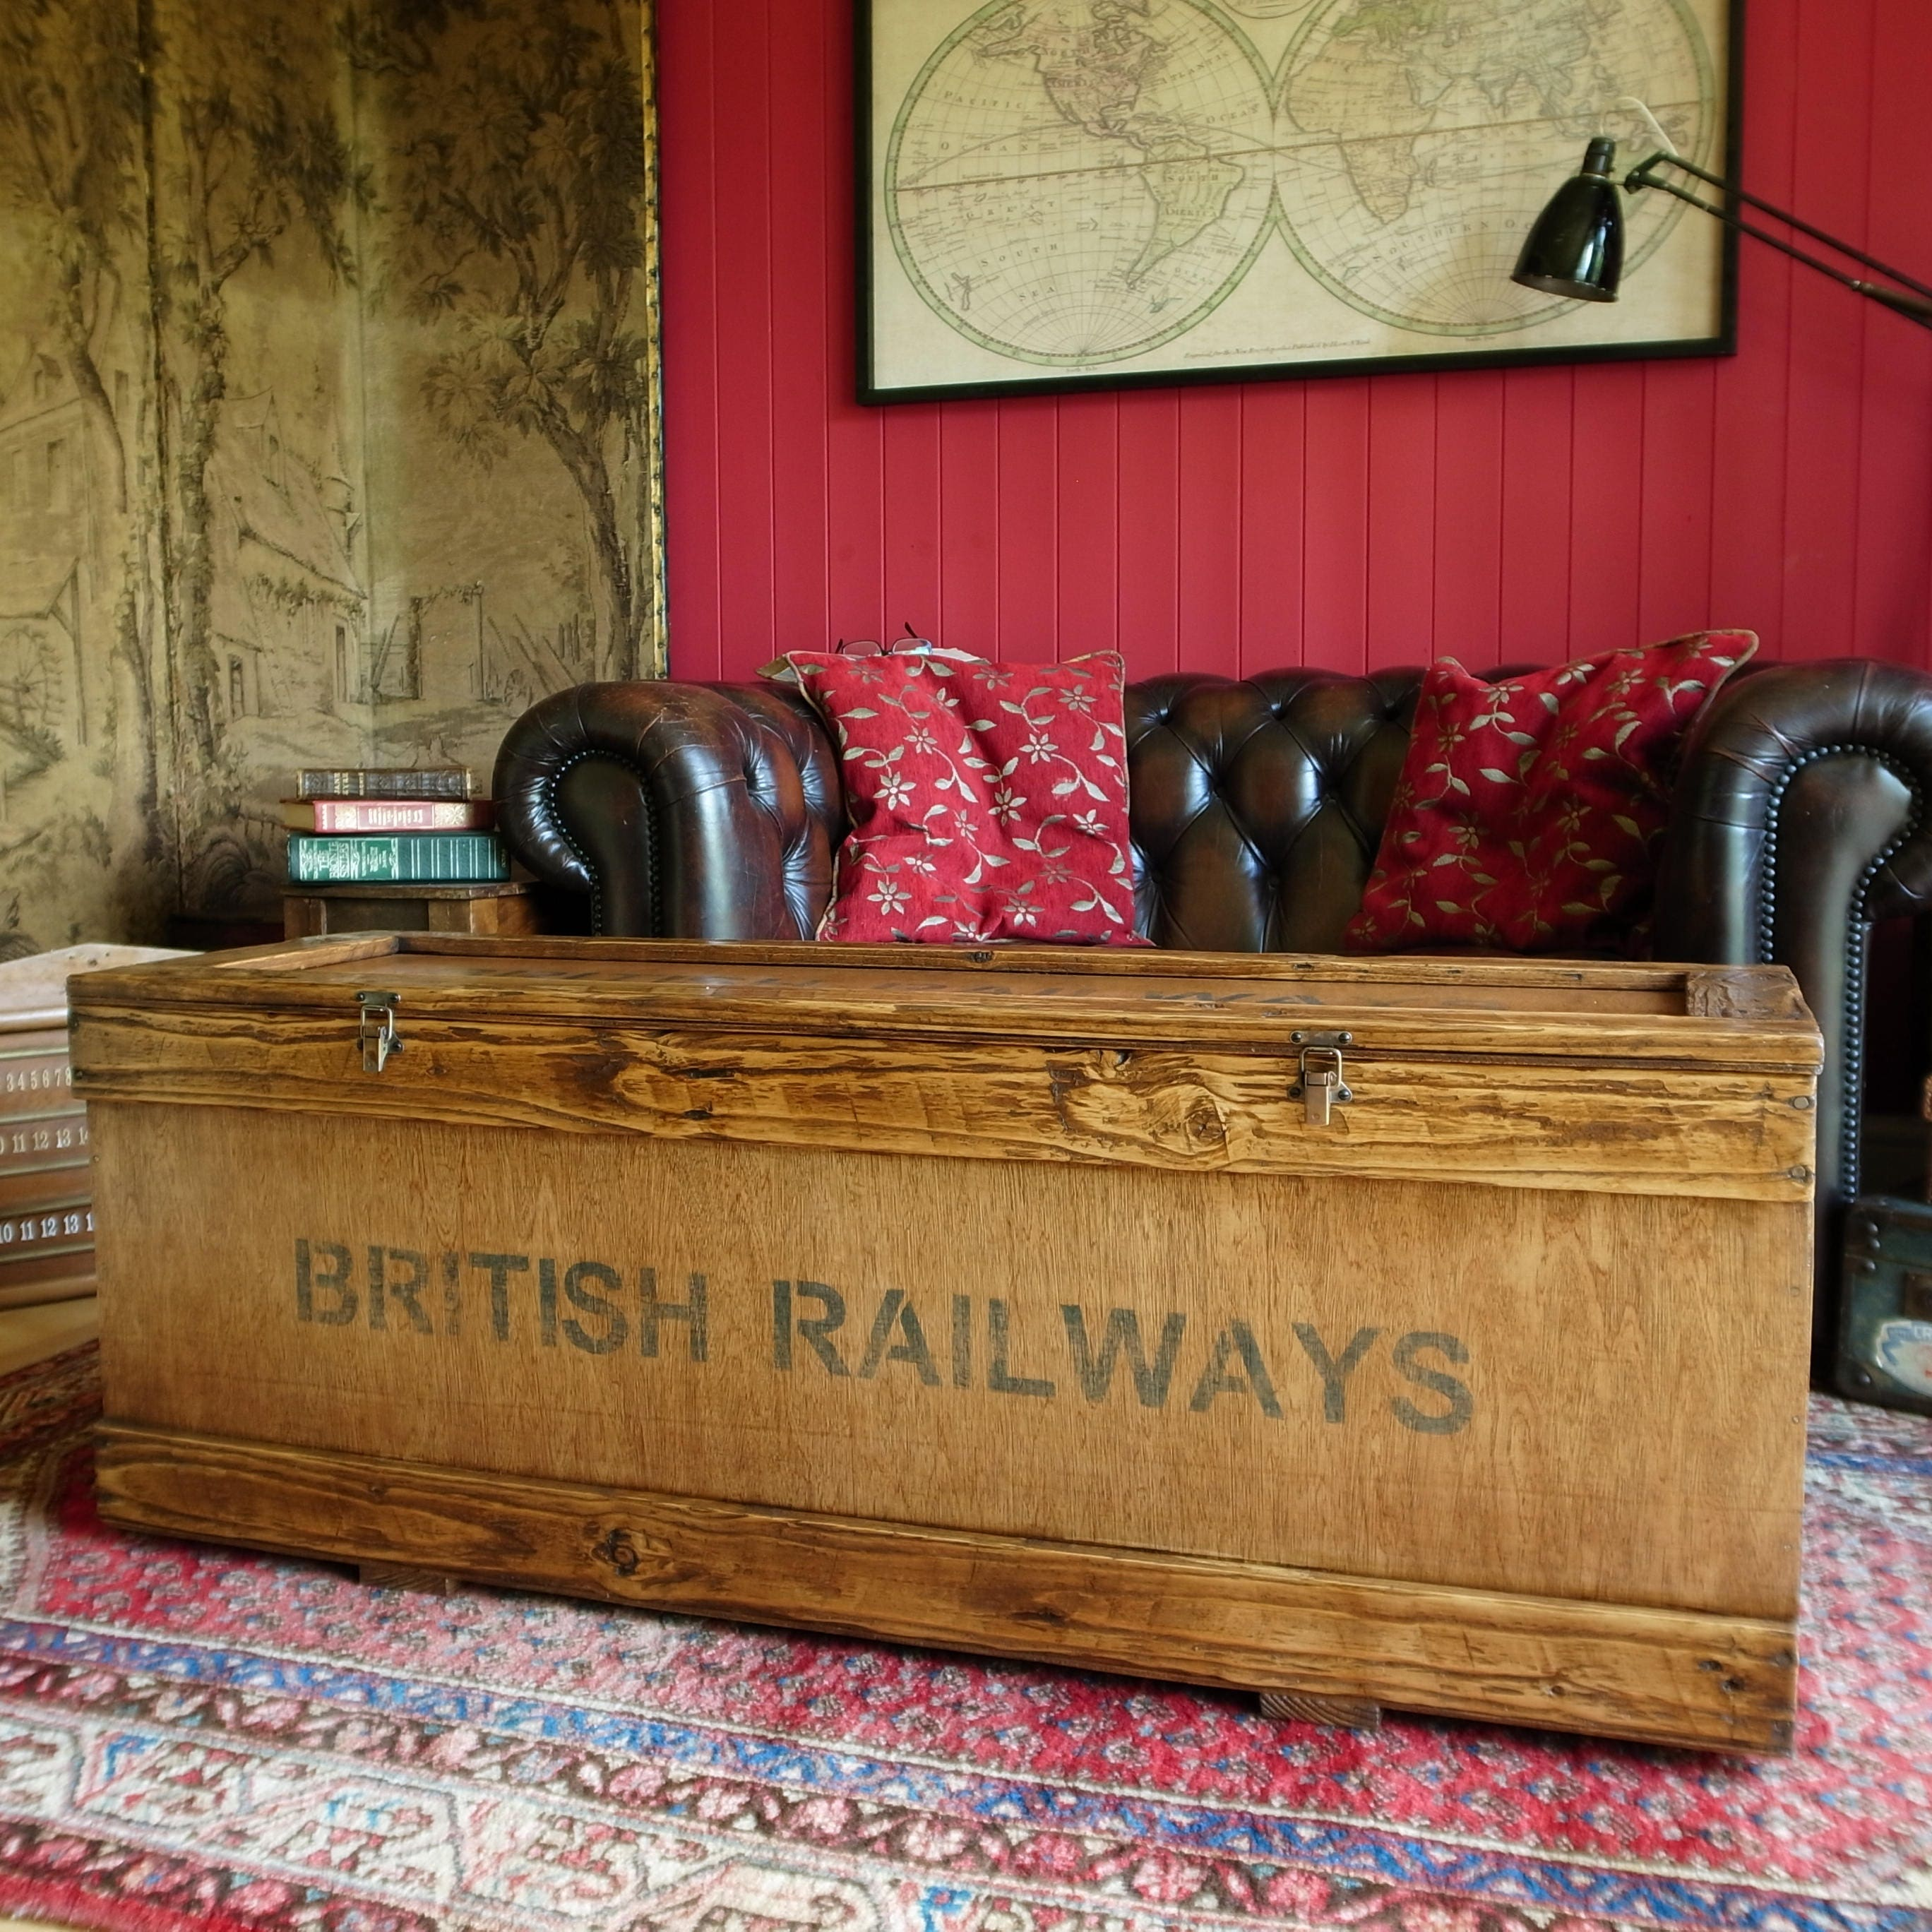 INDUSTRIAL RAILWAY CHEST Coffee Table Rustic Storage Bench Vintage Trunk Hand Crafted Furniture Reclaimed Wood